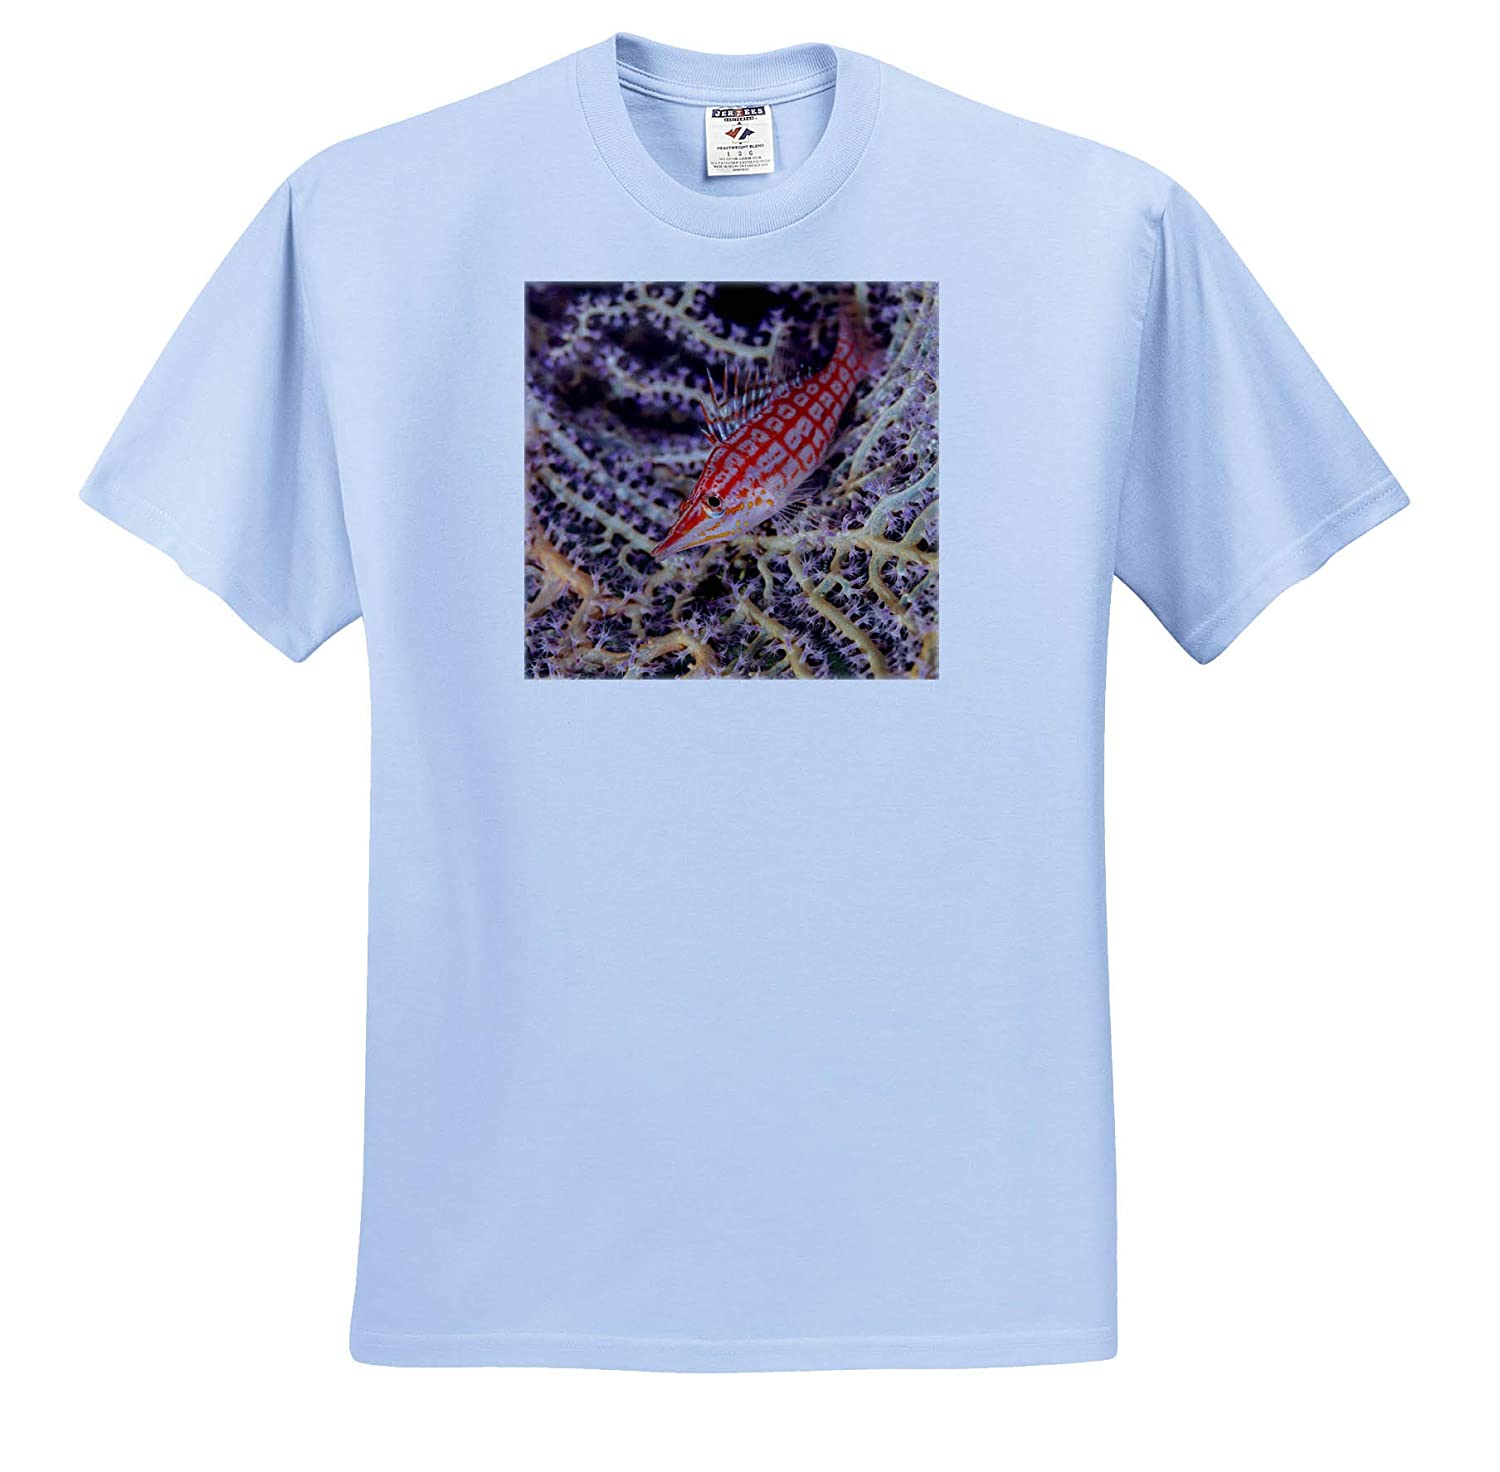 South Pacific - Adult T-Shirt XL Fish ts/_314019 Solomon Islands Close-up of Longnose hawkfish 3dRose Danita Delimont